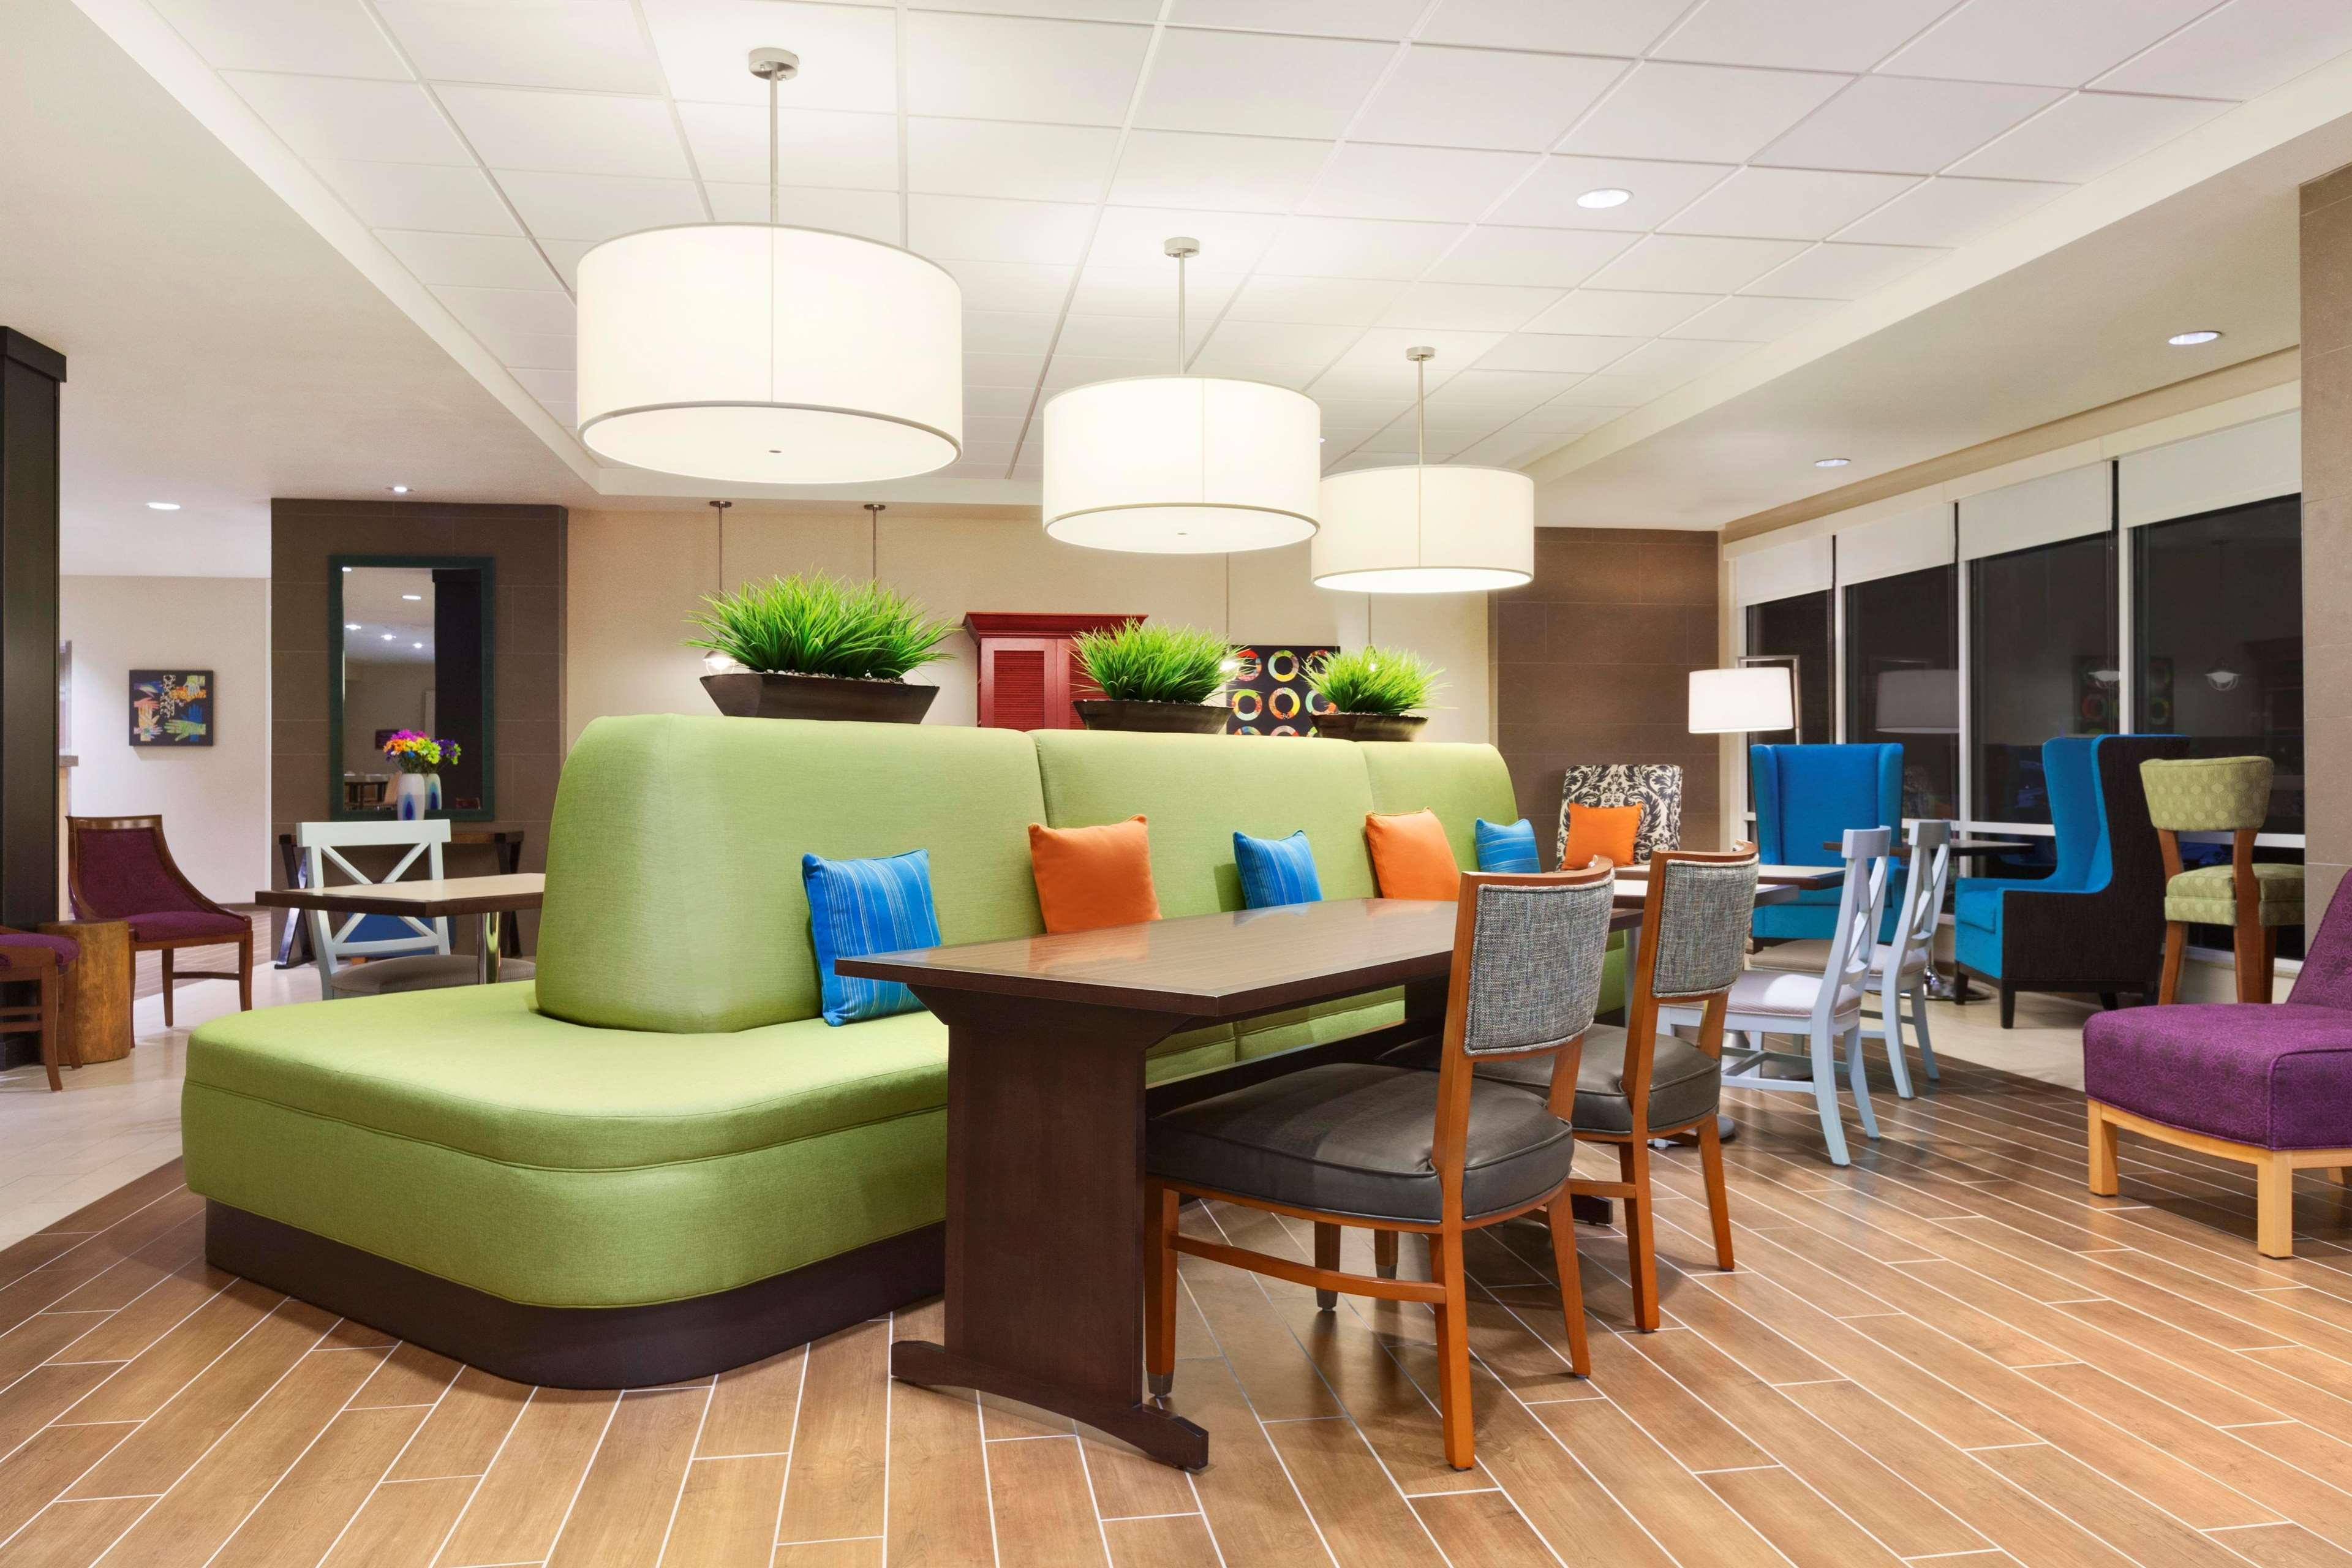 Home2 Suites by Hilton San Angelo image 3